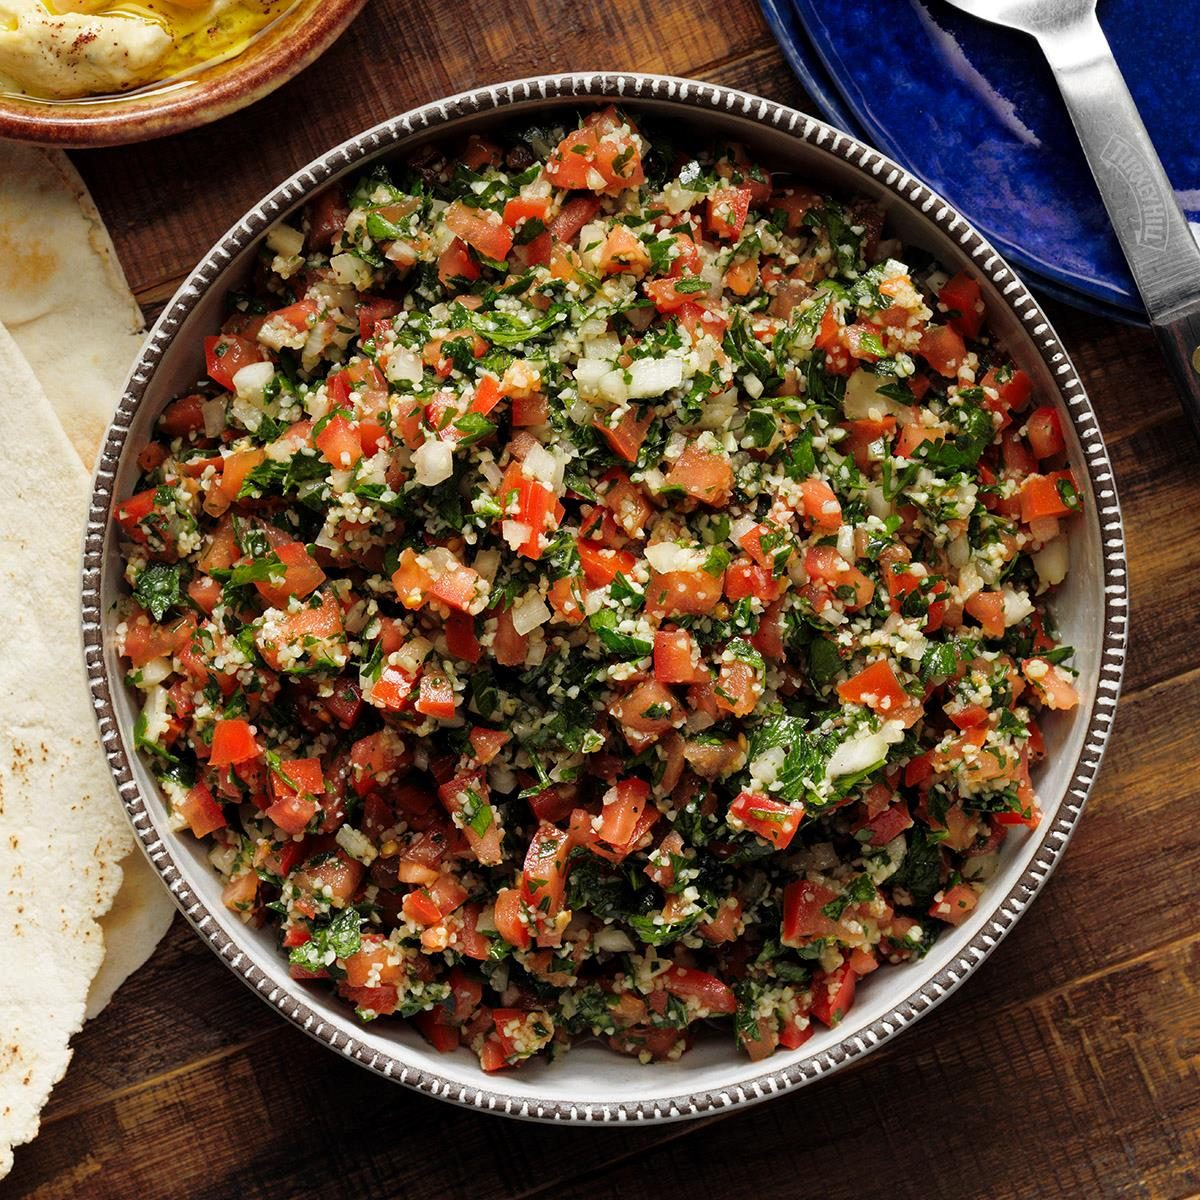 A bowl of tabouleh from Layla's Lebanese restaurant.